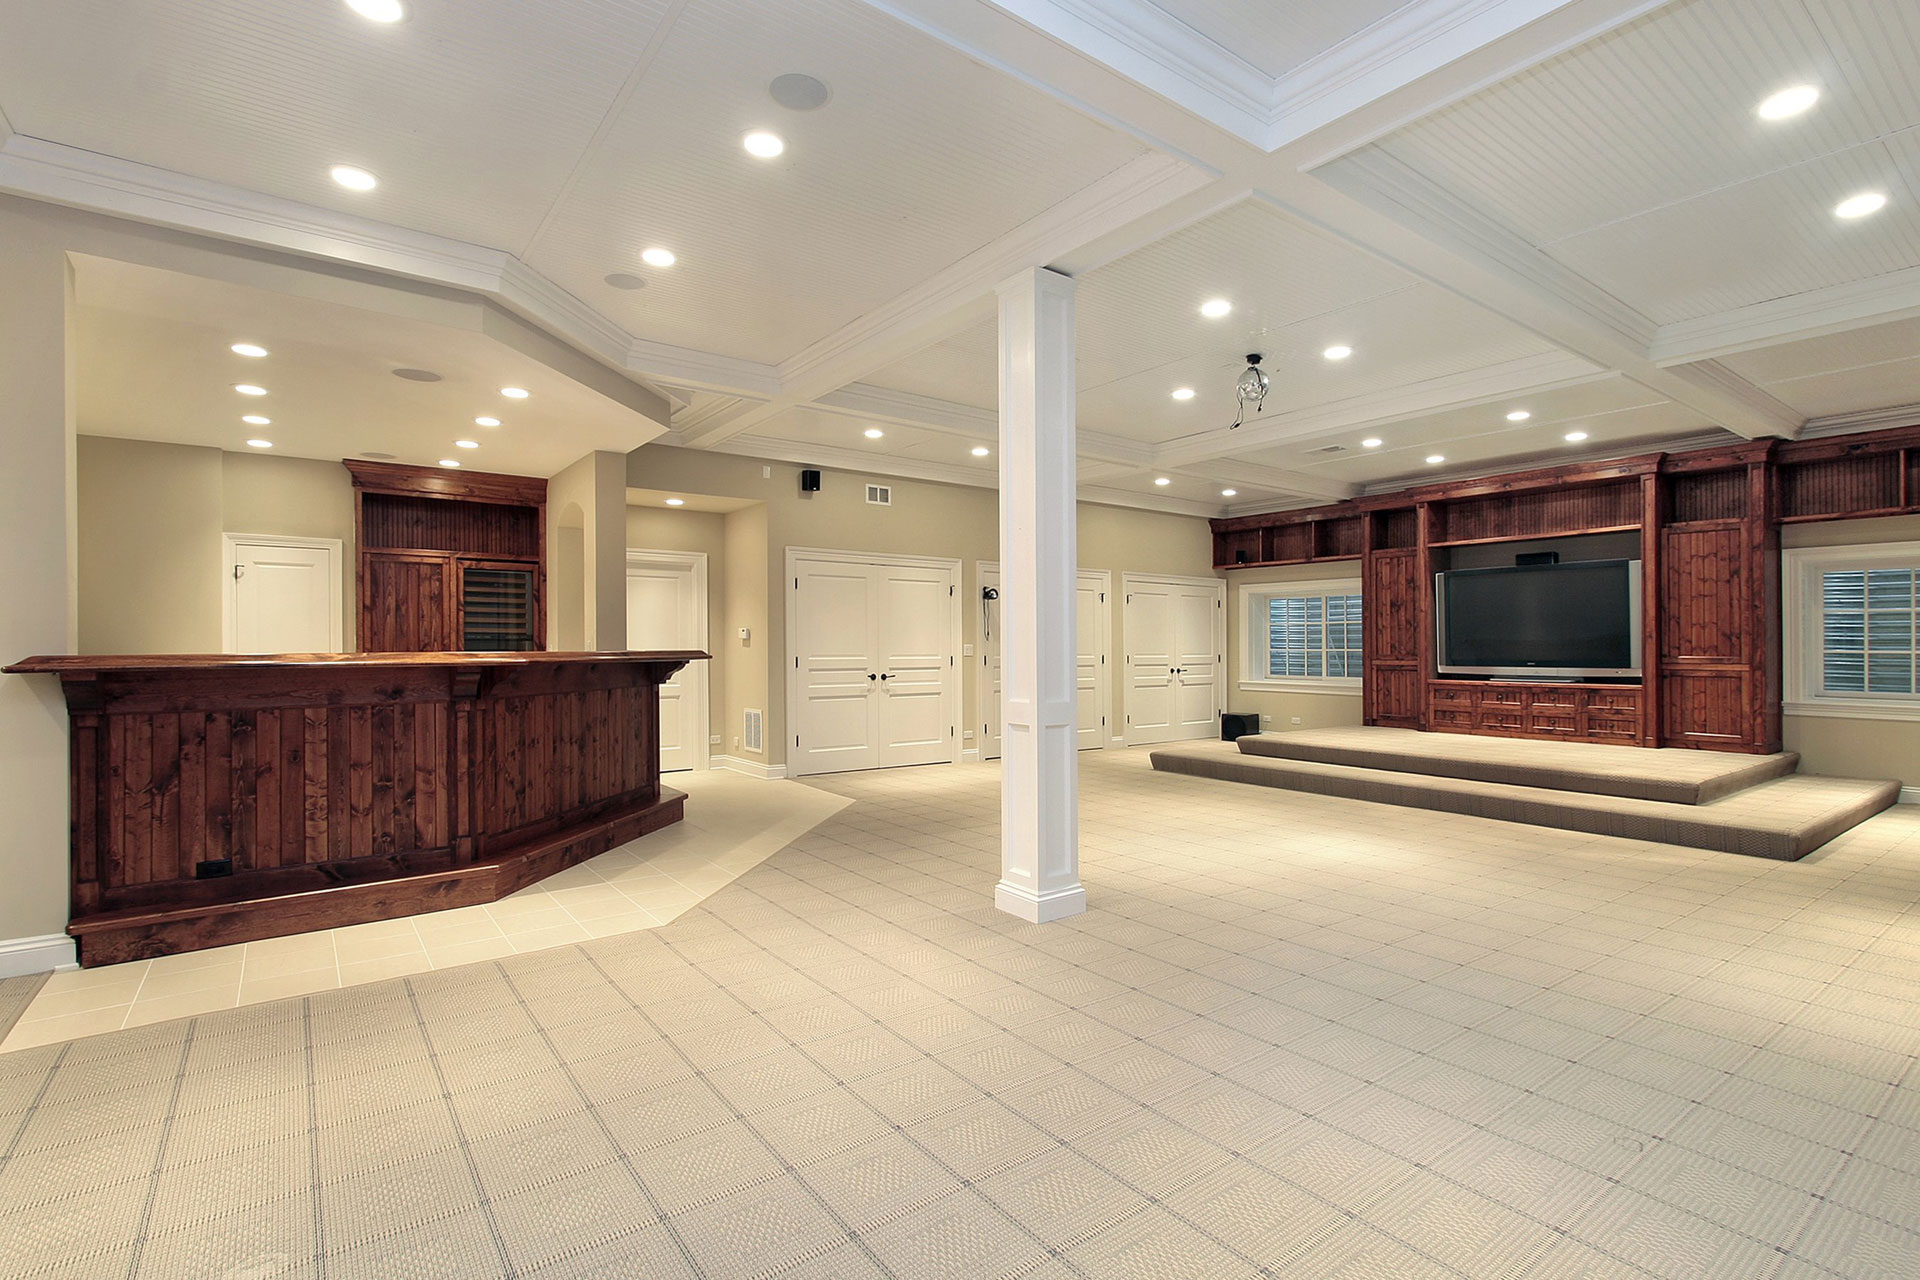 renovated basement with wooden bar and wall unit